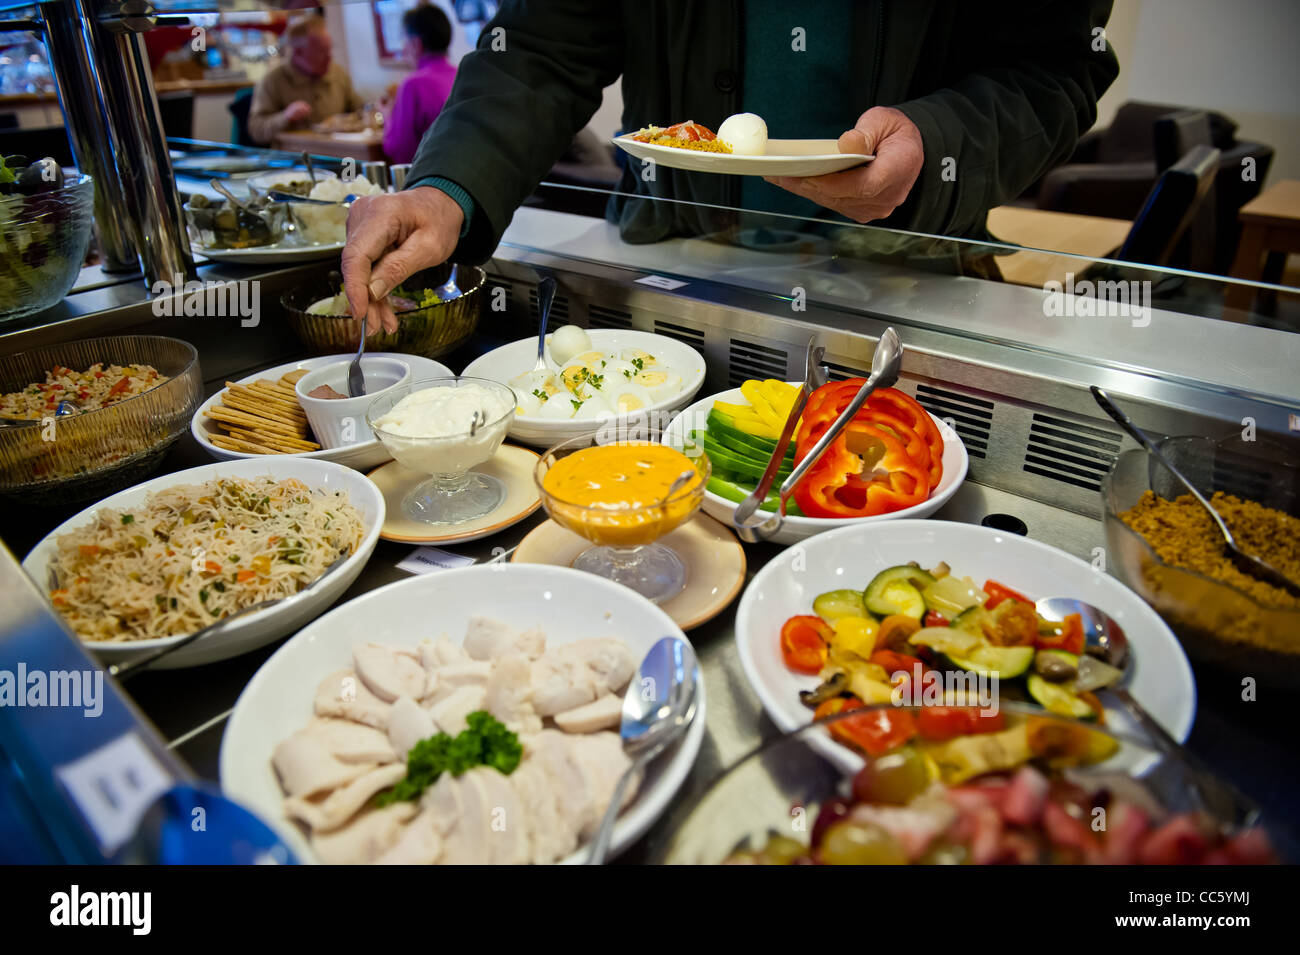 Buffet Counter Of Salad Cold Meats Fruits Rice And Pasta